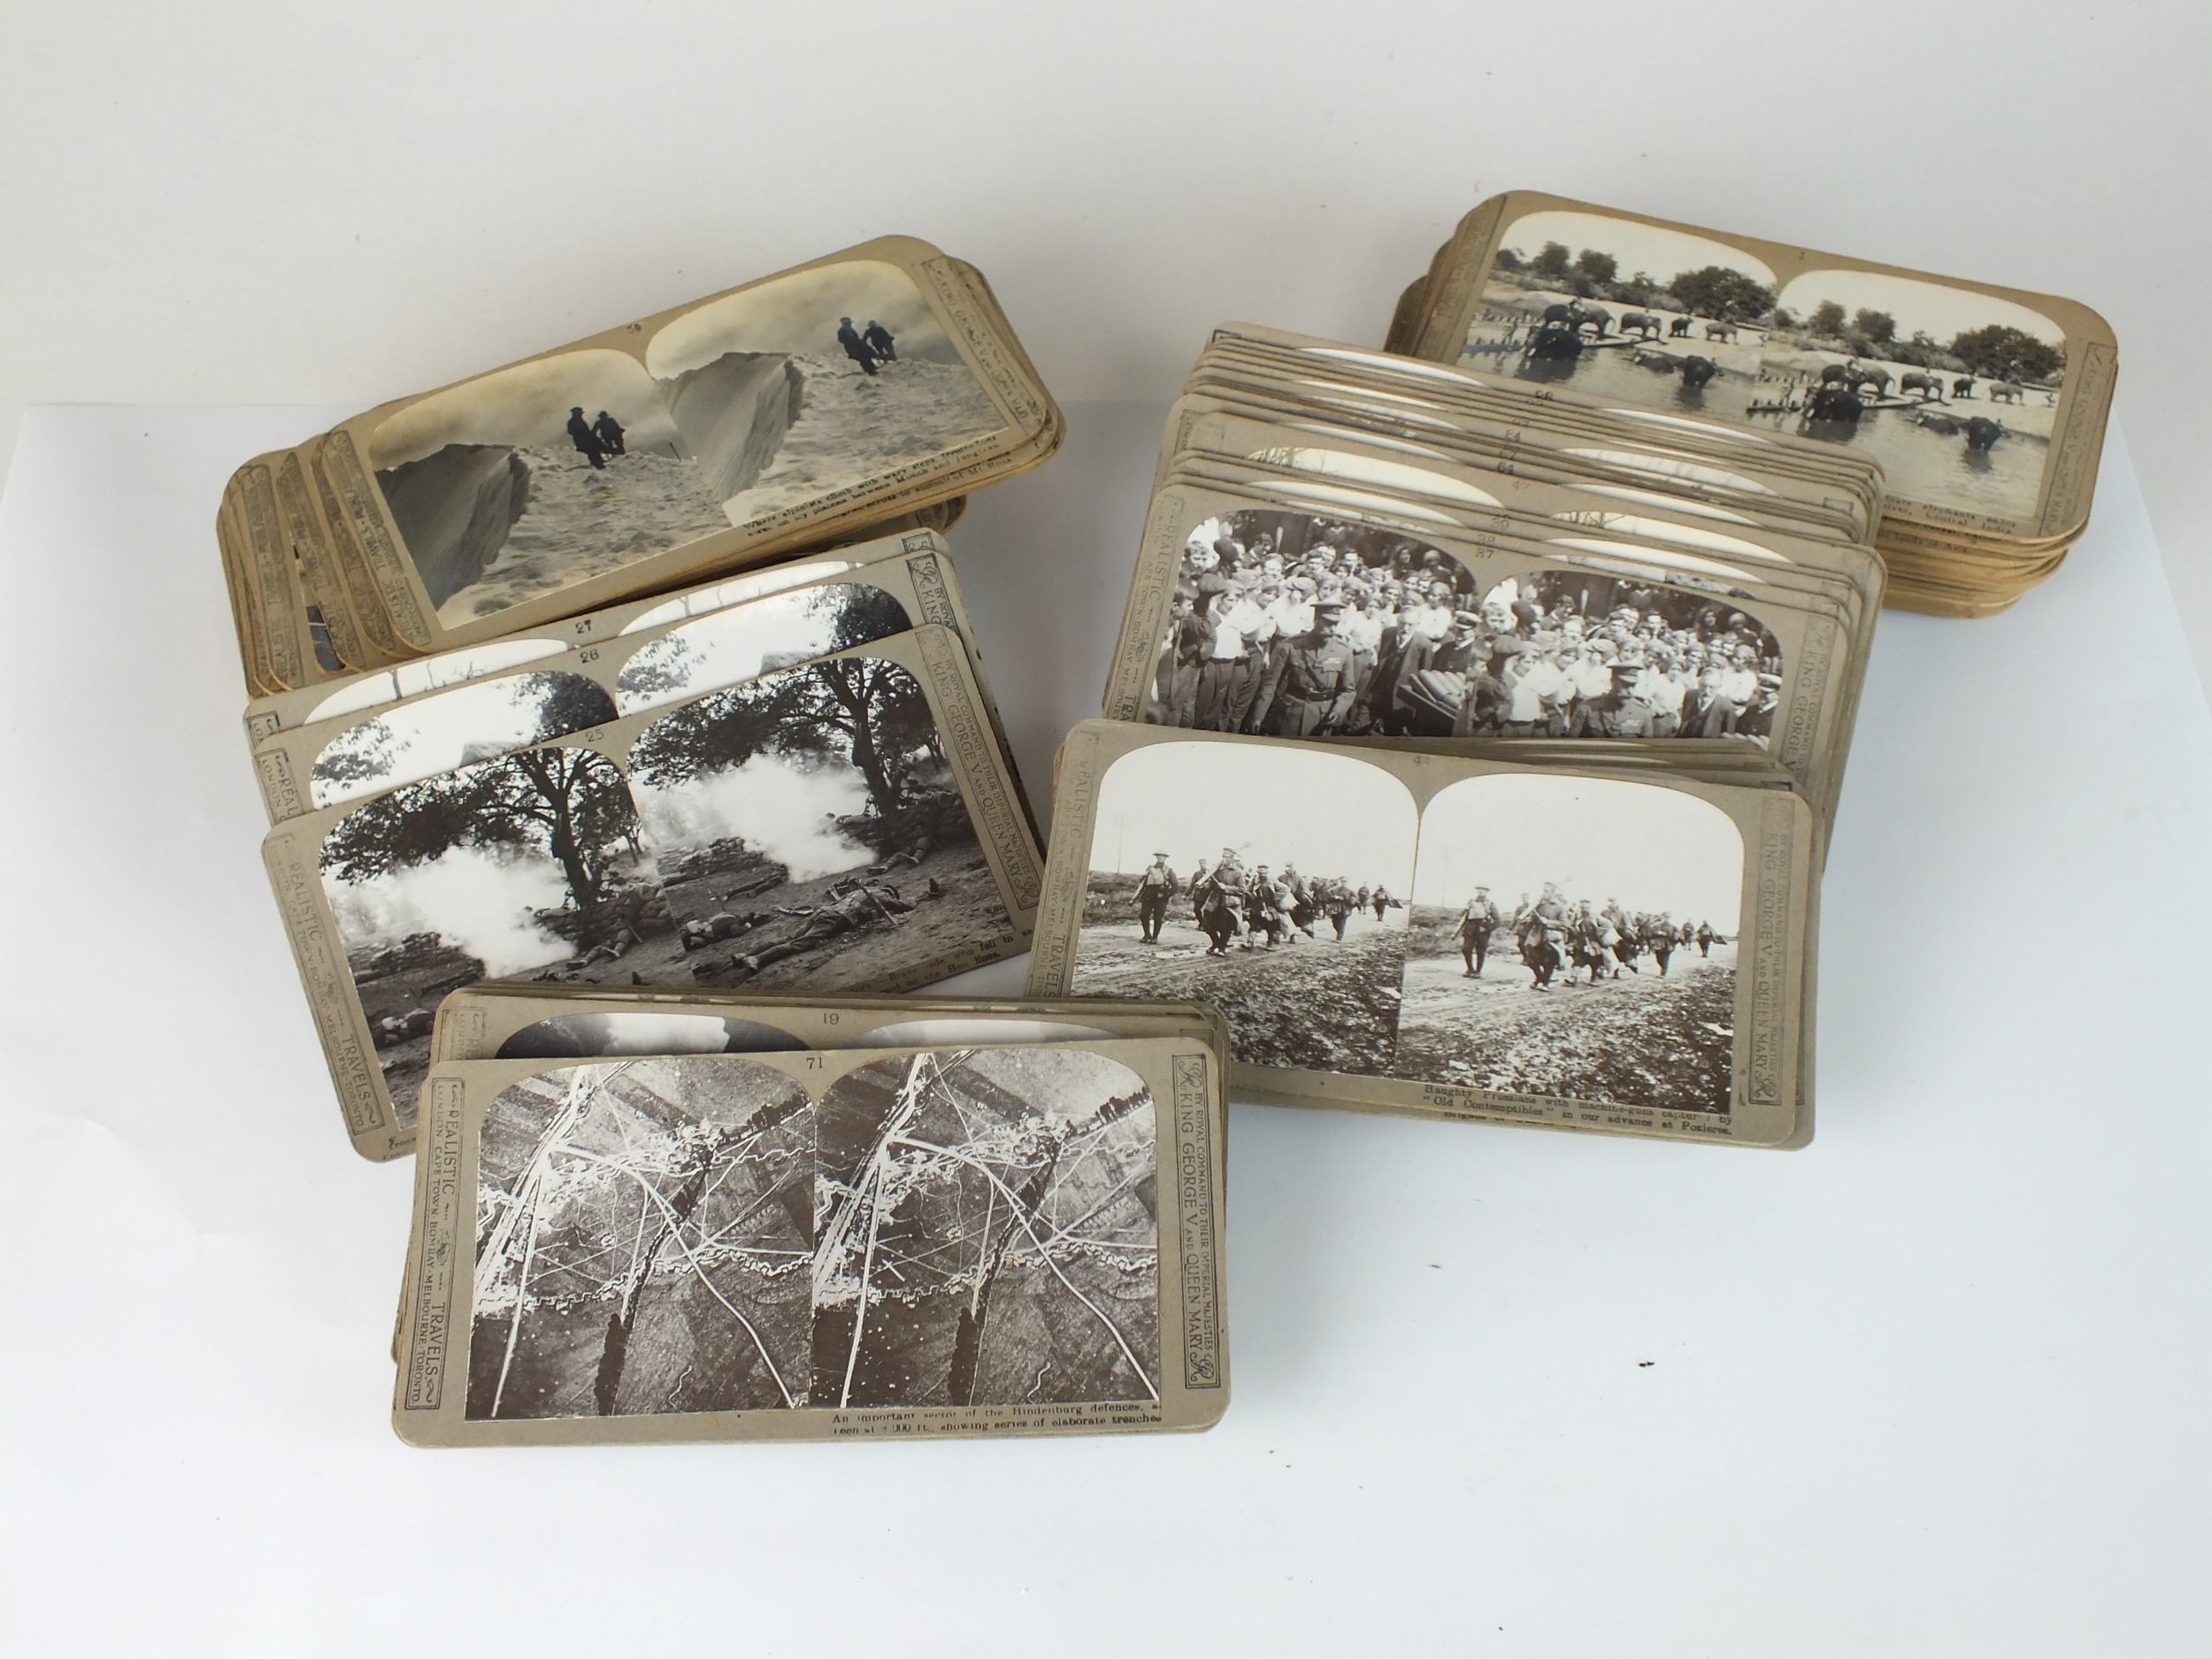 Real Photographic stereoscope cards, including military